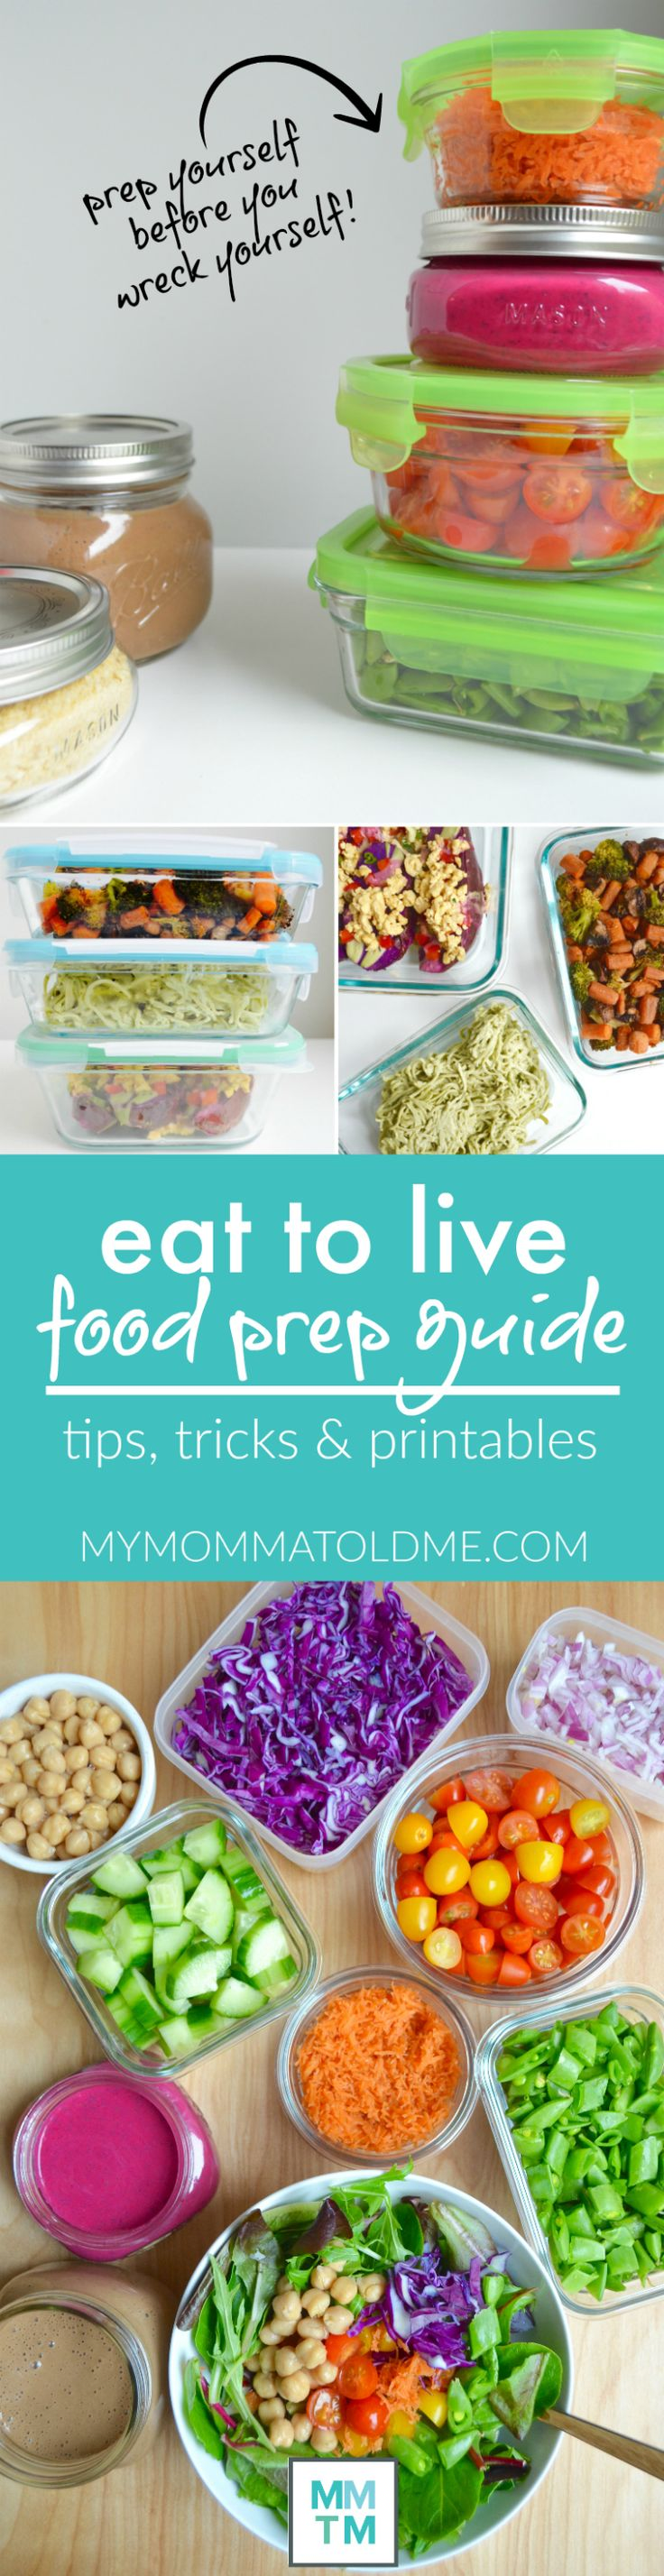 Everything you need to eat clean, vegan, nutritarian, whole food plant-based, no-oil for a week!  Meal prep on Sunday and follow Dr. Fuhrman's eat to live plan all week long!  Get a free printable meal planning schedule!